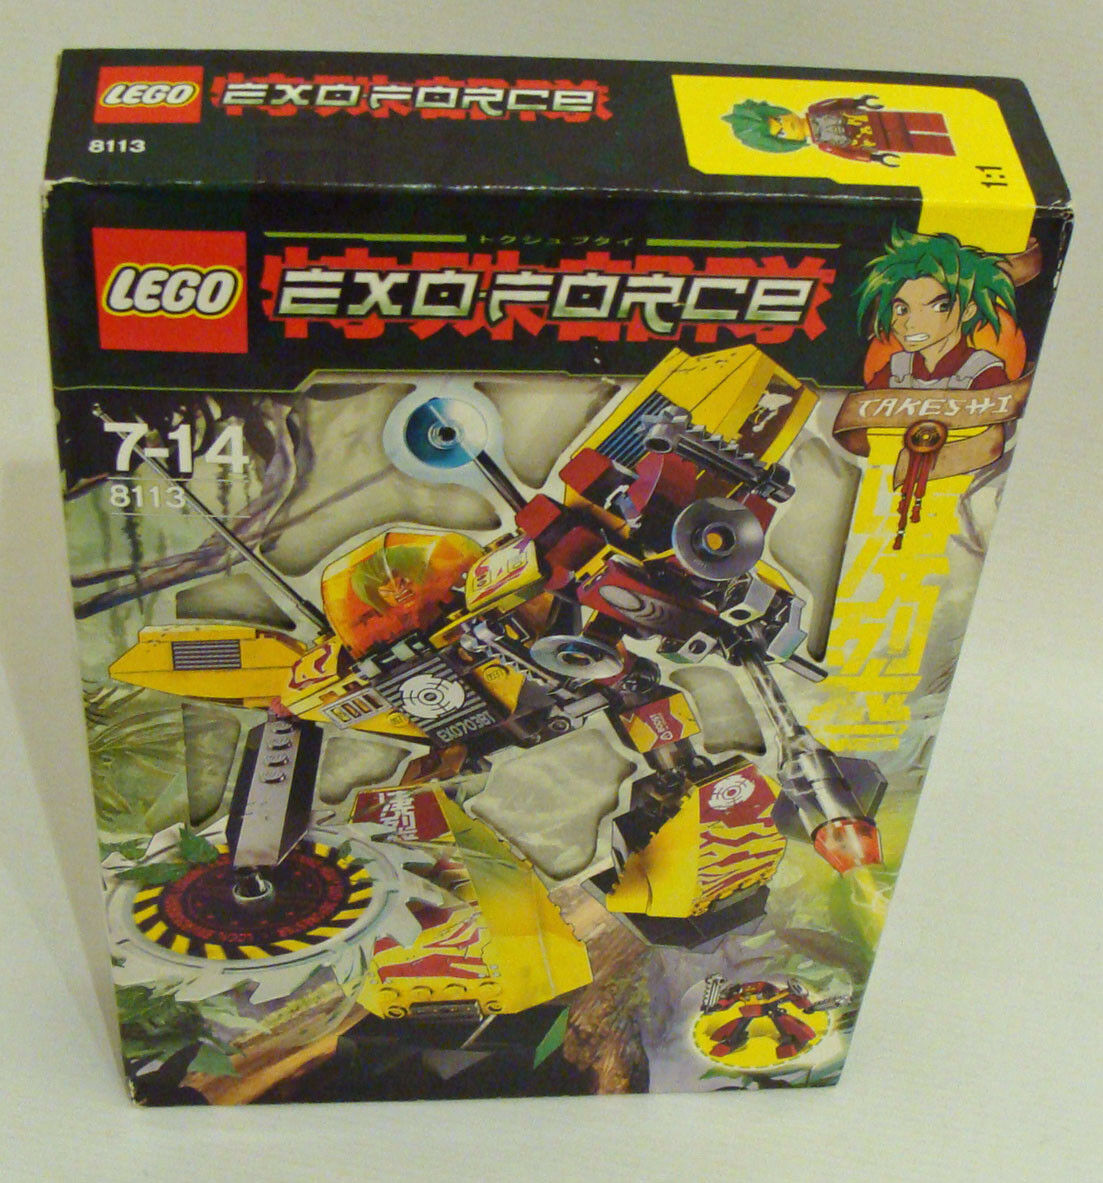 LEGO ® EXO FORCE 8113-aussault Tiger 7-14 anni 163 PEZZI NUOVO NEW